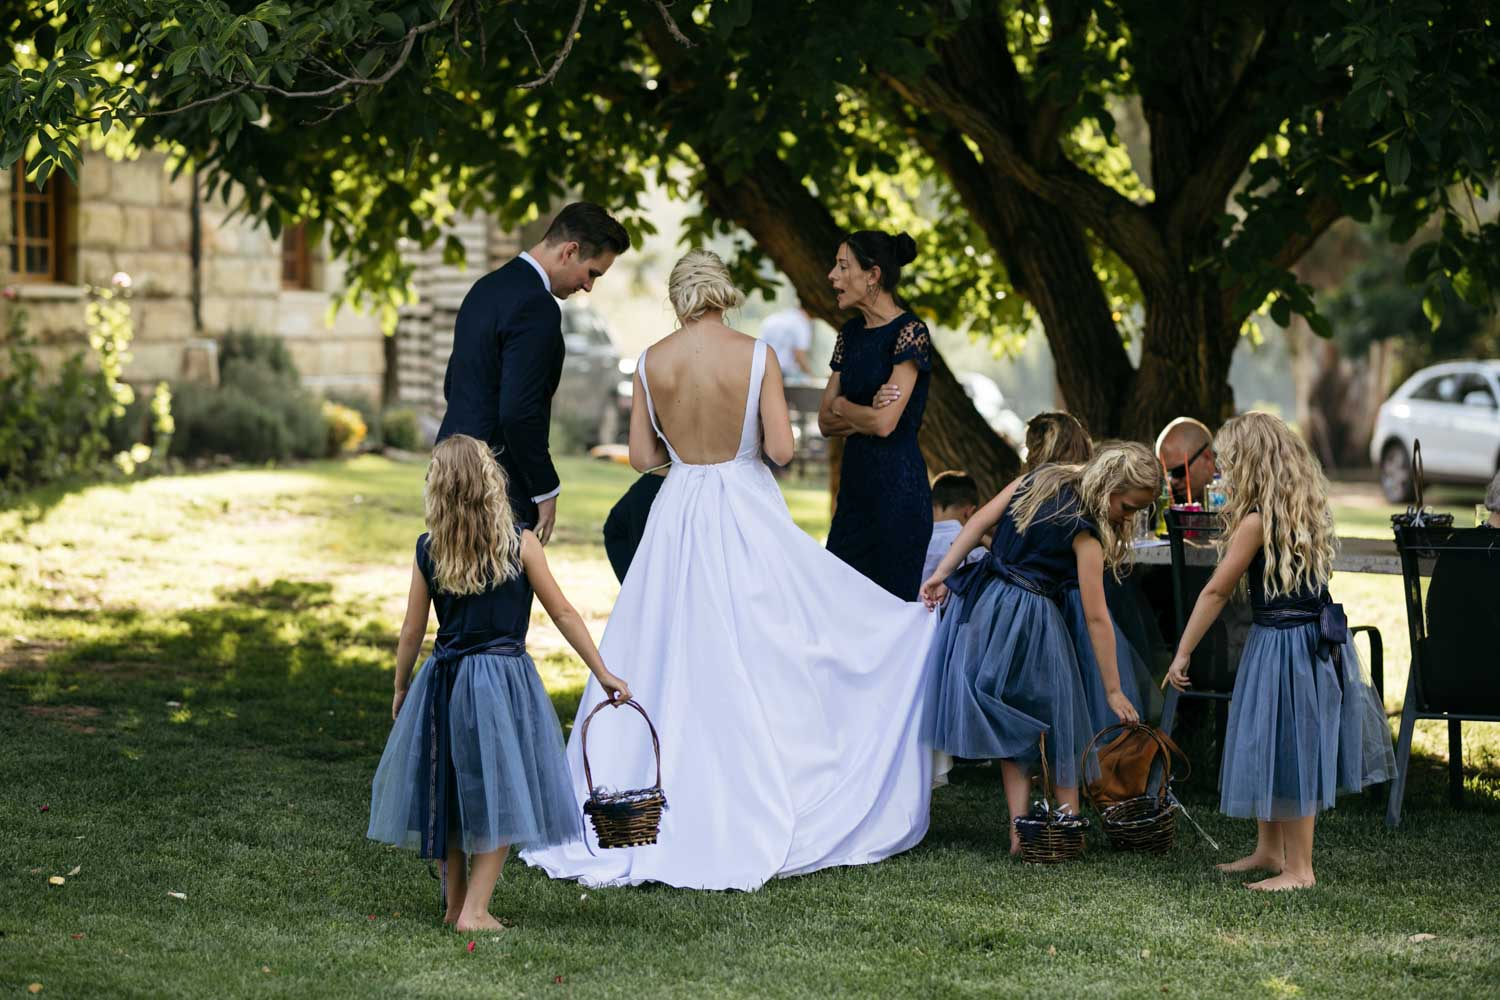 Cute Photo Moment Between Bride And Her Flower Girls